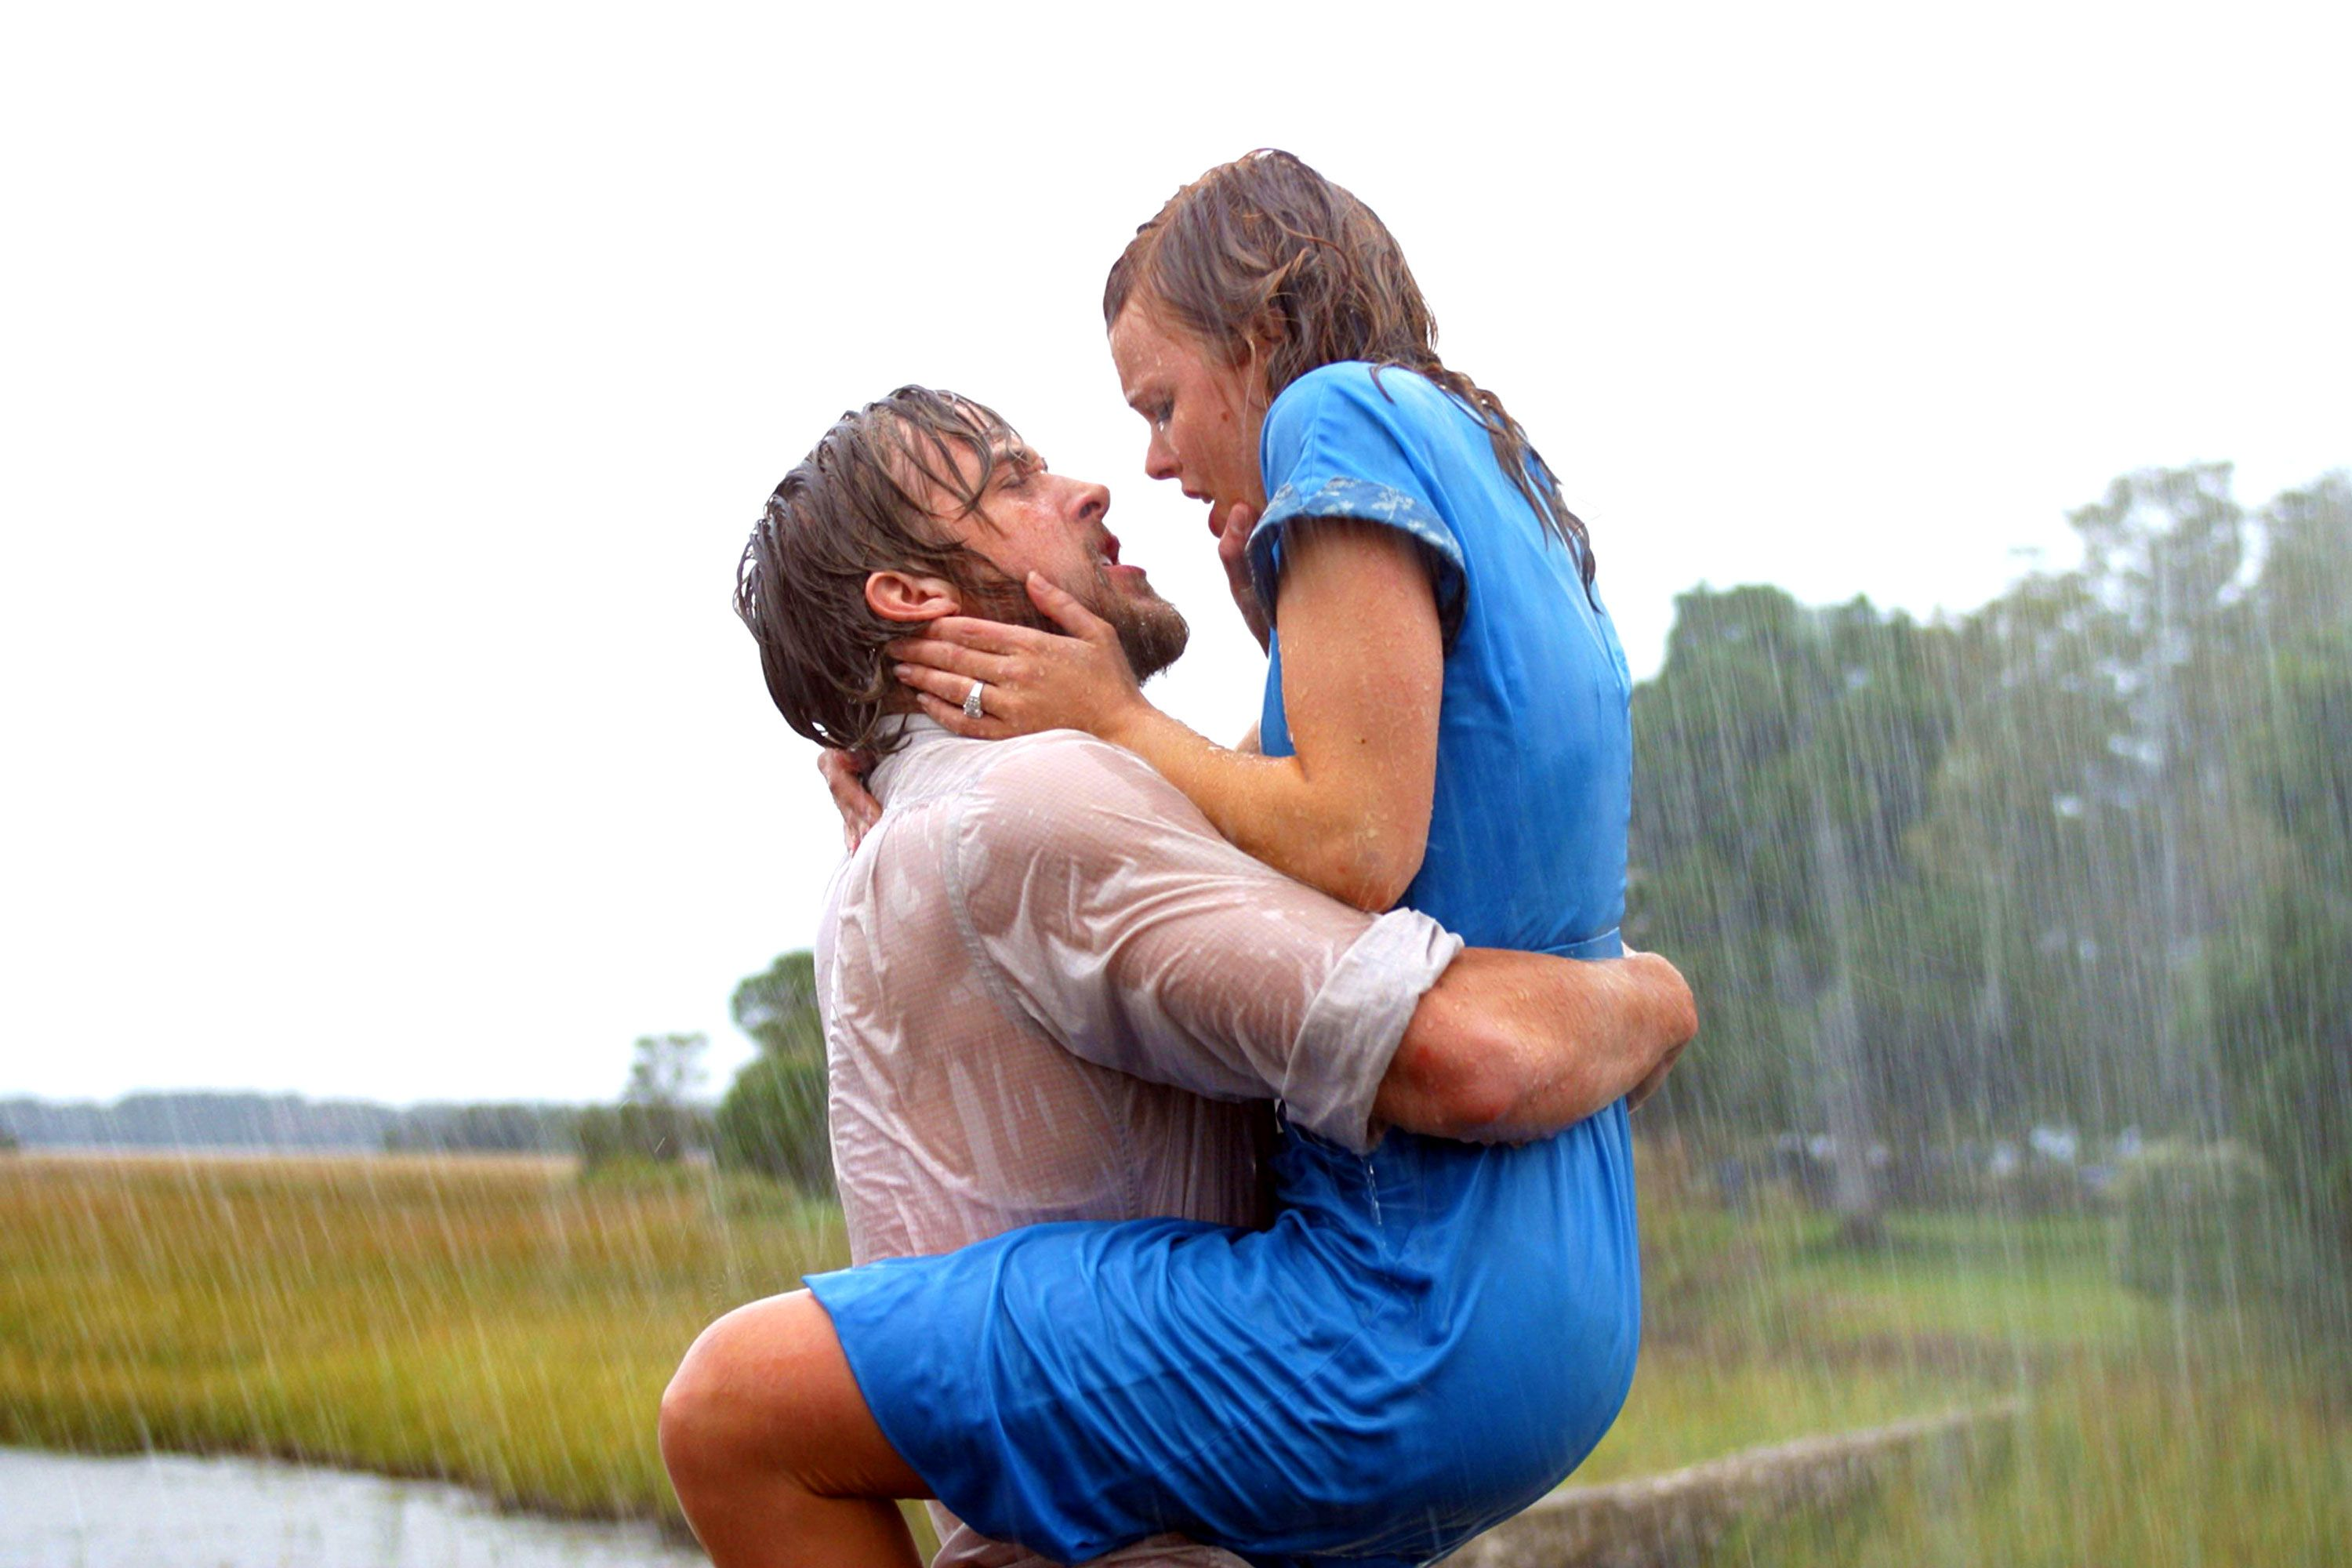 8 moments that are like love, but actually manipulation